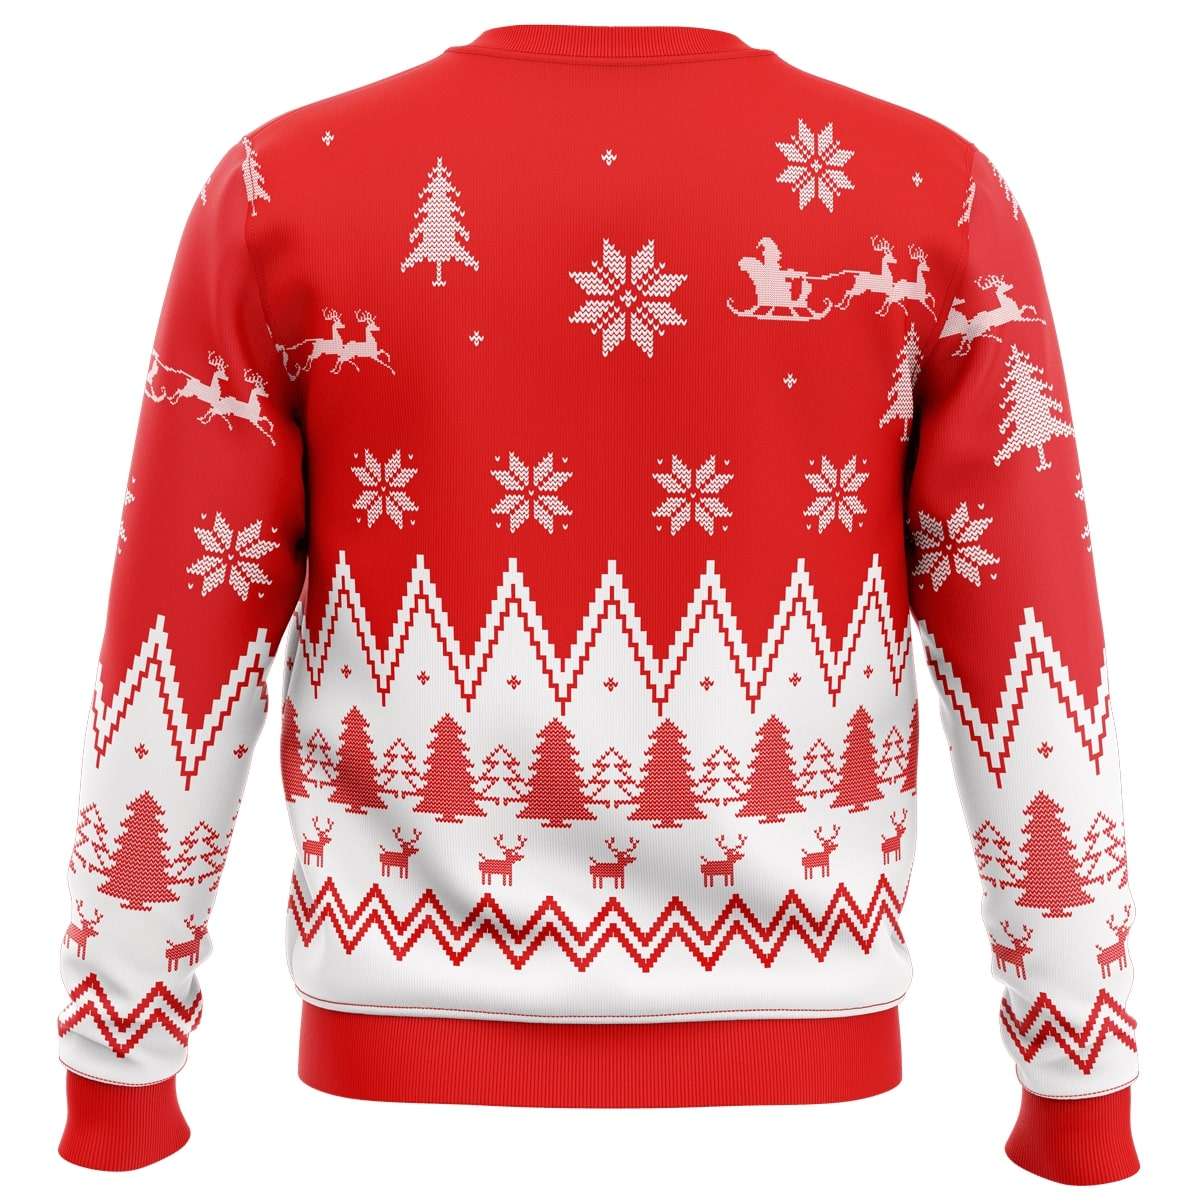 make christmas great again trump all over printed ugly hristmas sweater 4